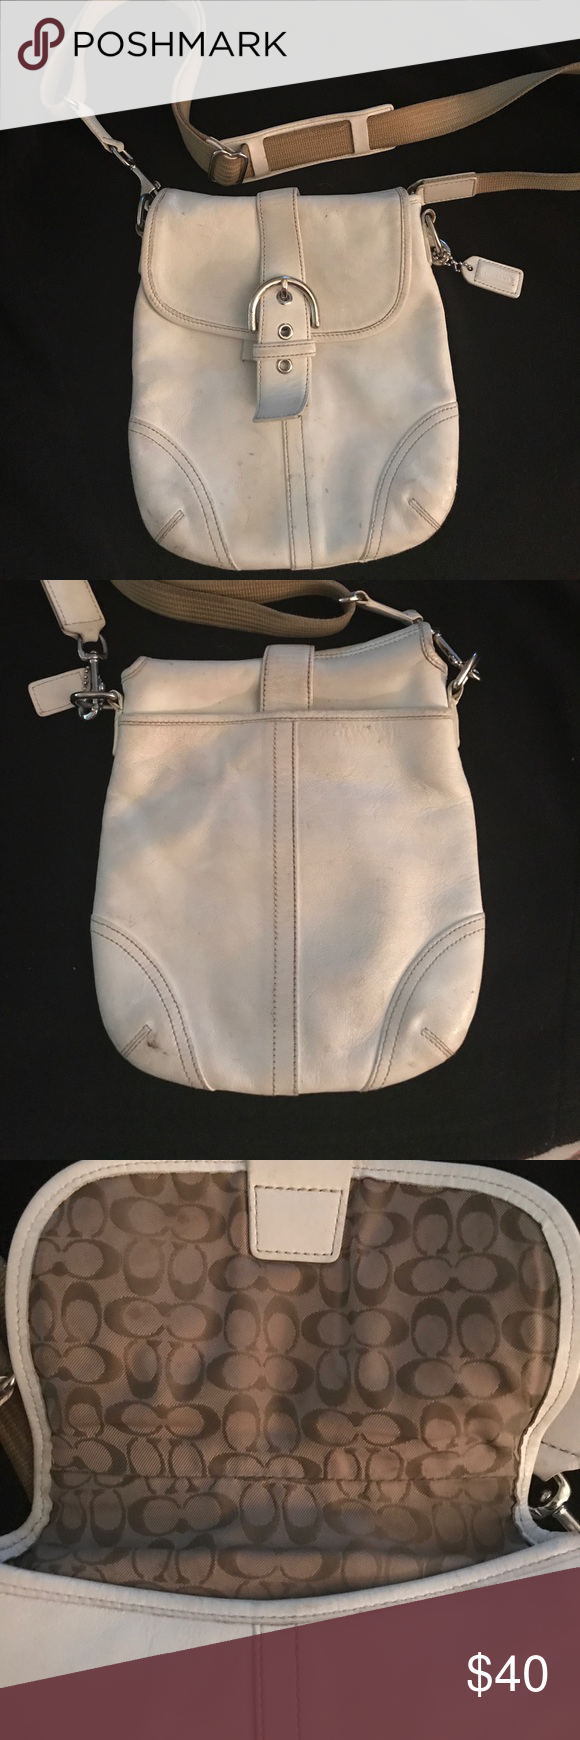 Authentic COACH cross body bag Very Used Coach bag.. white leather(needs cleaning) snap closure strap needs to be repaired but still closes...(see pics) Coach Bags Crossbody Bags